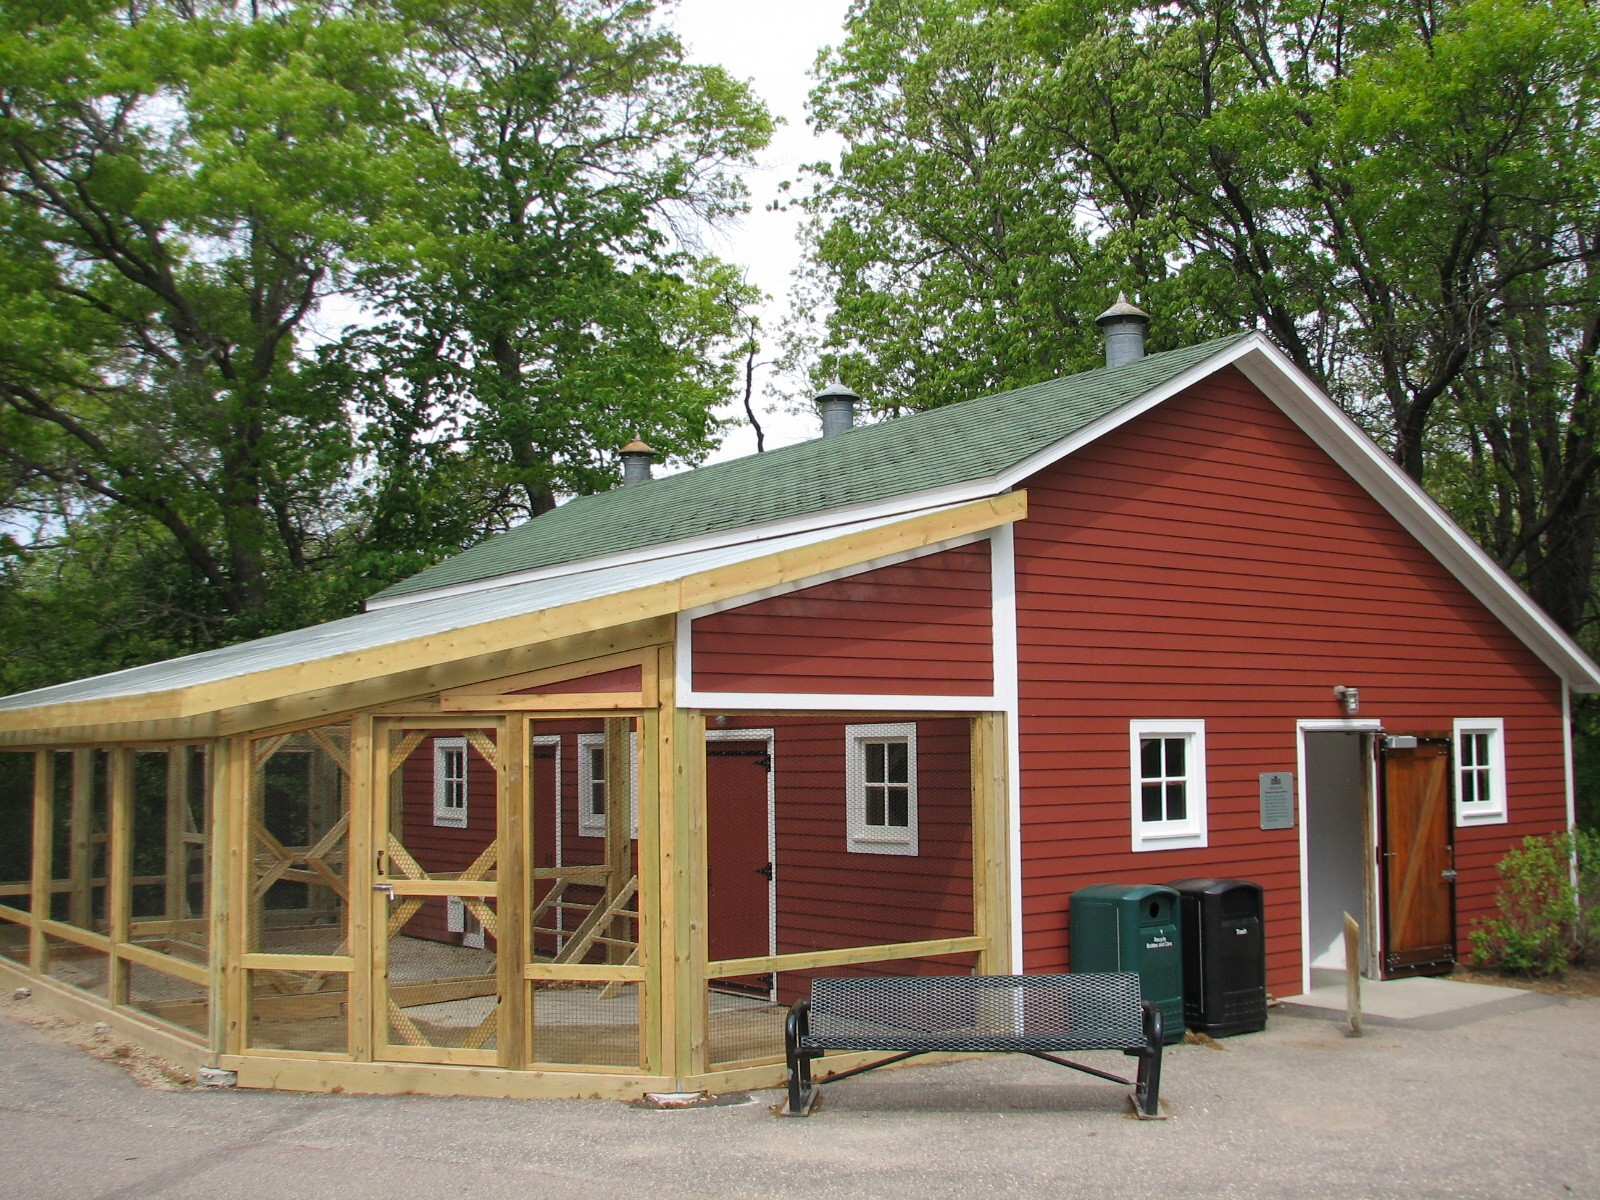 Garage With Apartment Kit Family Farm Chicken Barn Exterior Zoochat